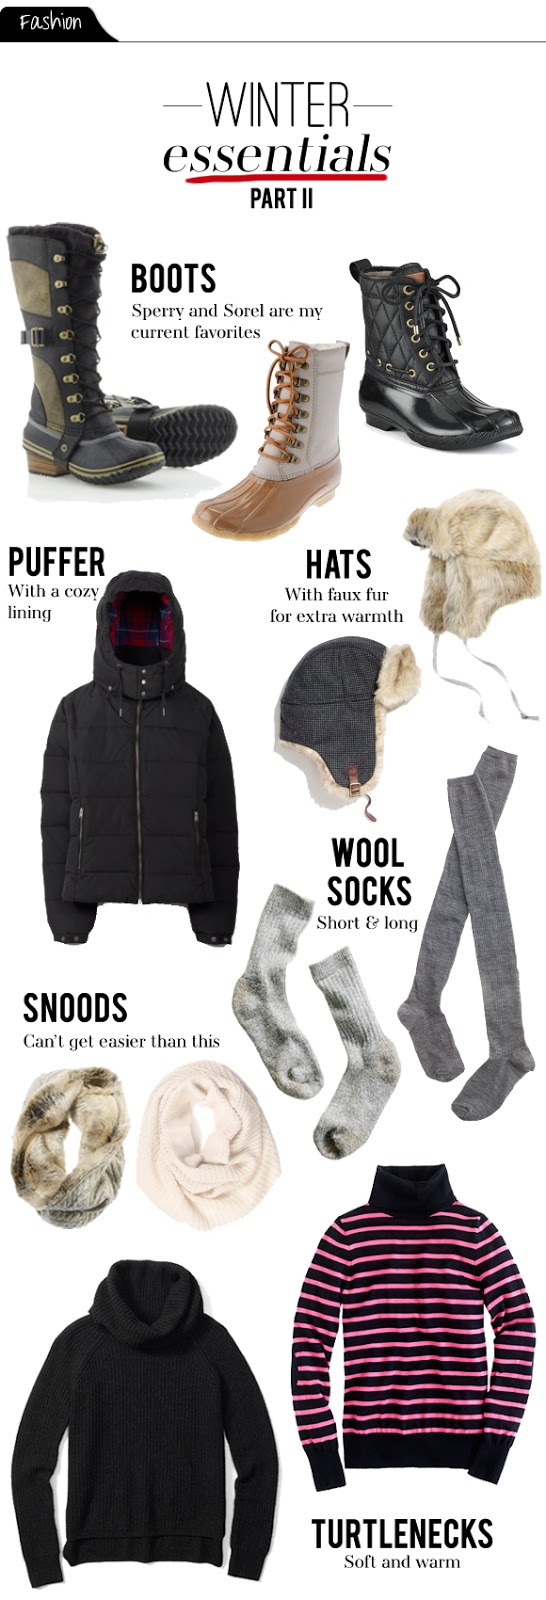 Winter Clothing Essential Parts